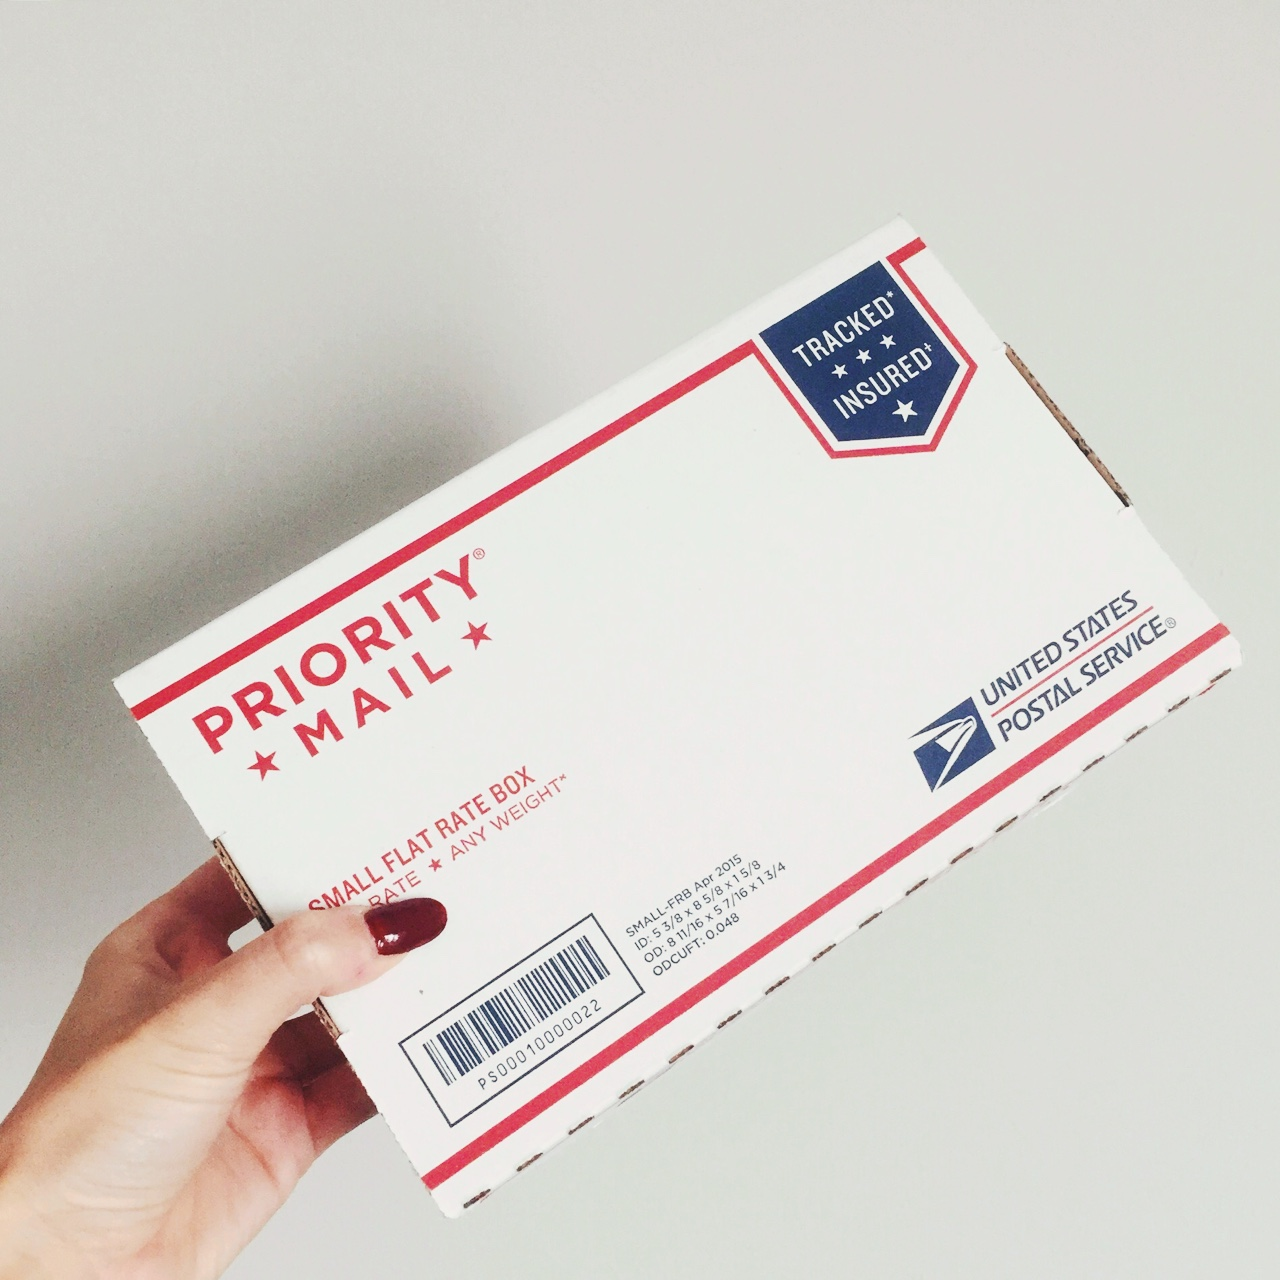 1 Priority Mail Small Flat Rate Box  Fill this ⬆️ box    - Depop